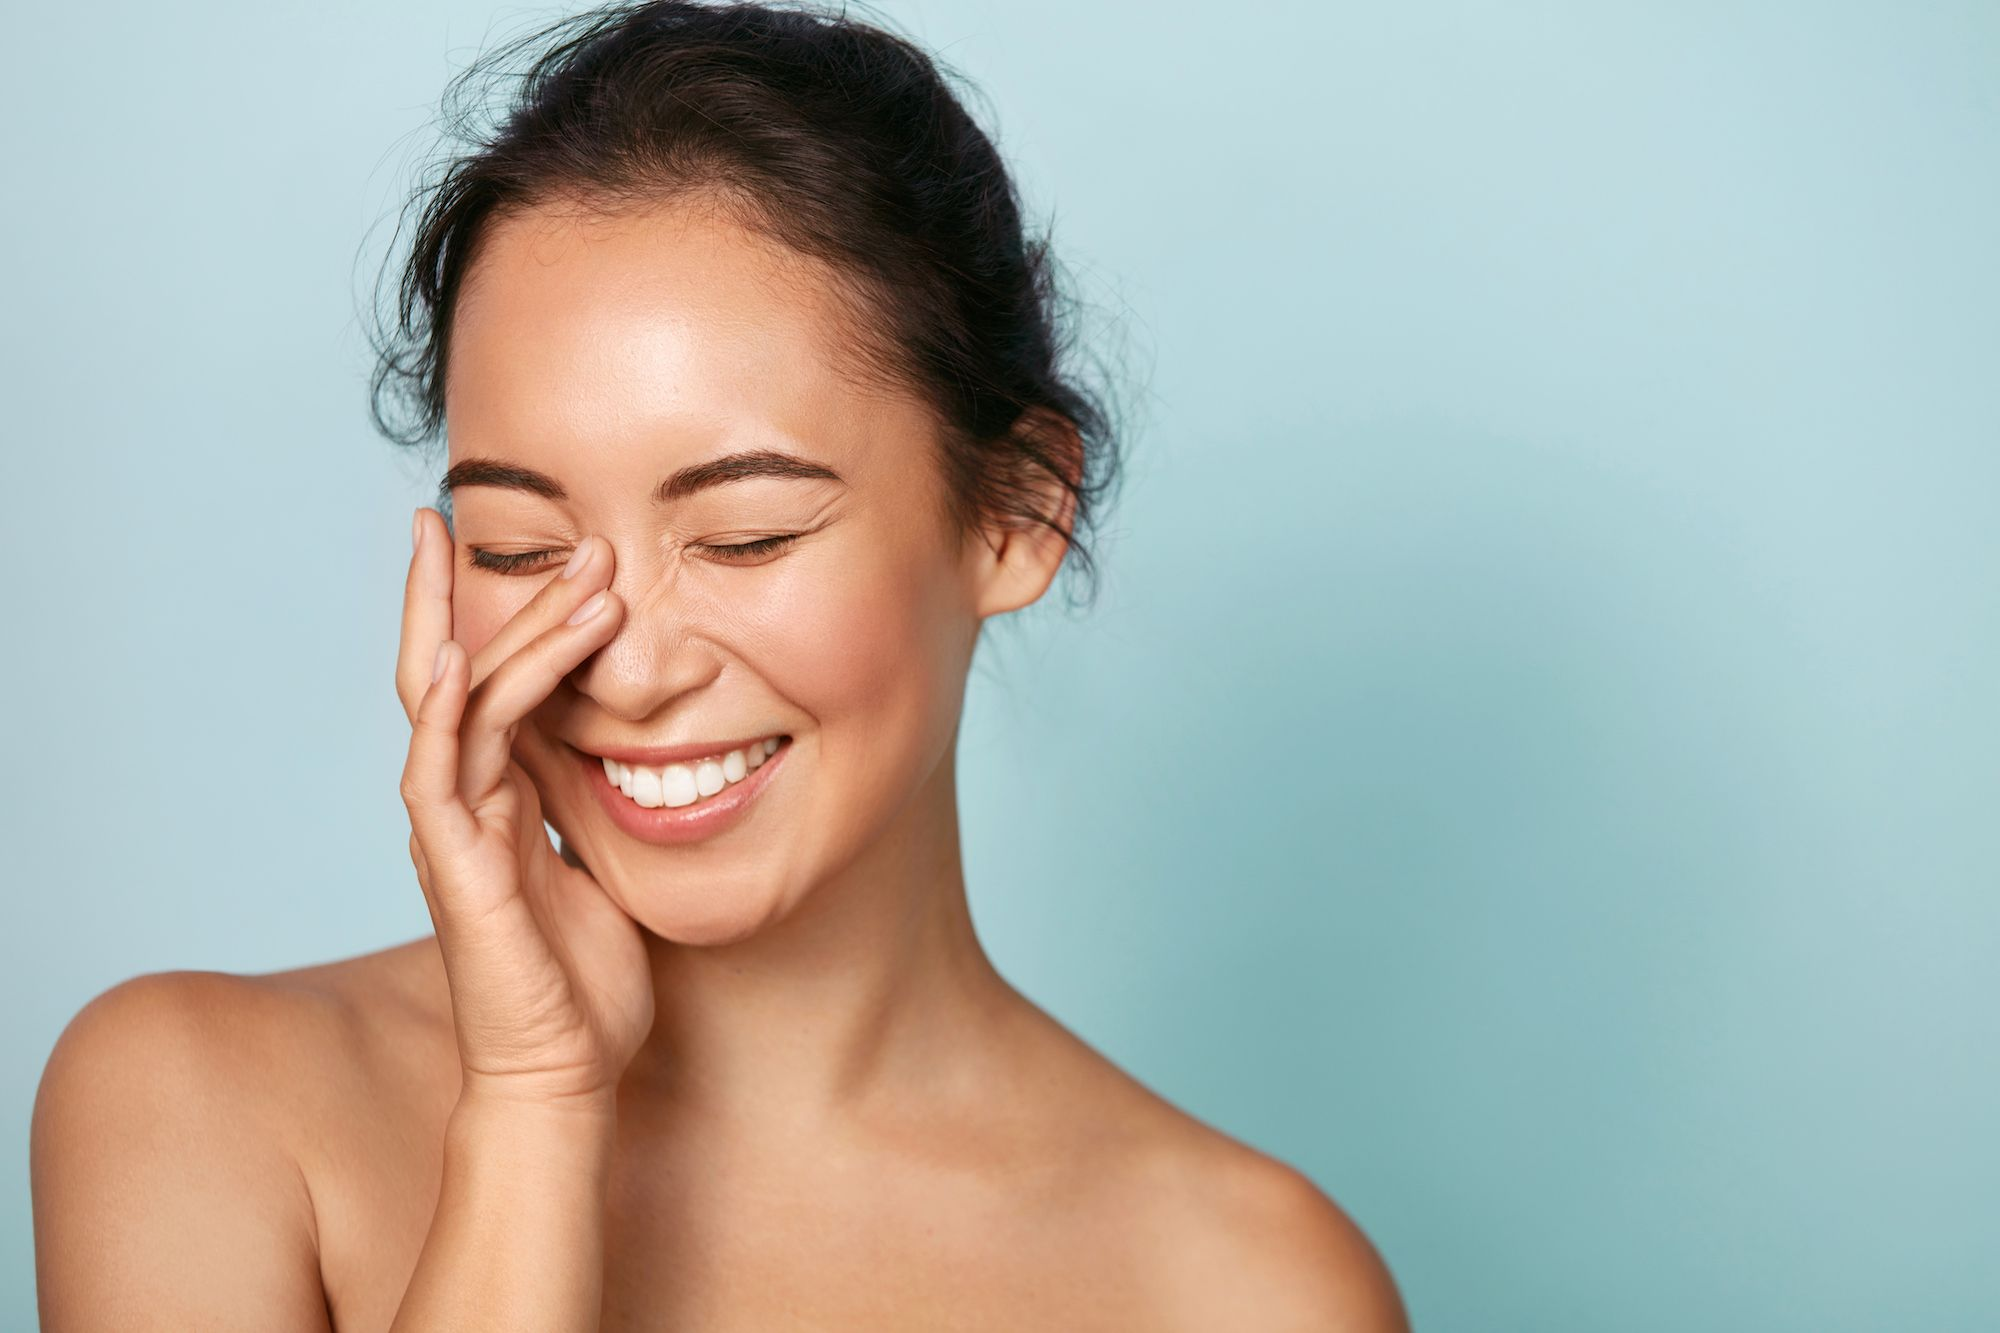 How To Care For Oily Skin––And The Mistakes To Avoid Making, According To A Dermatologist